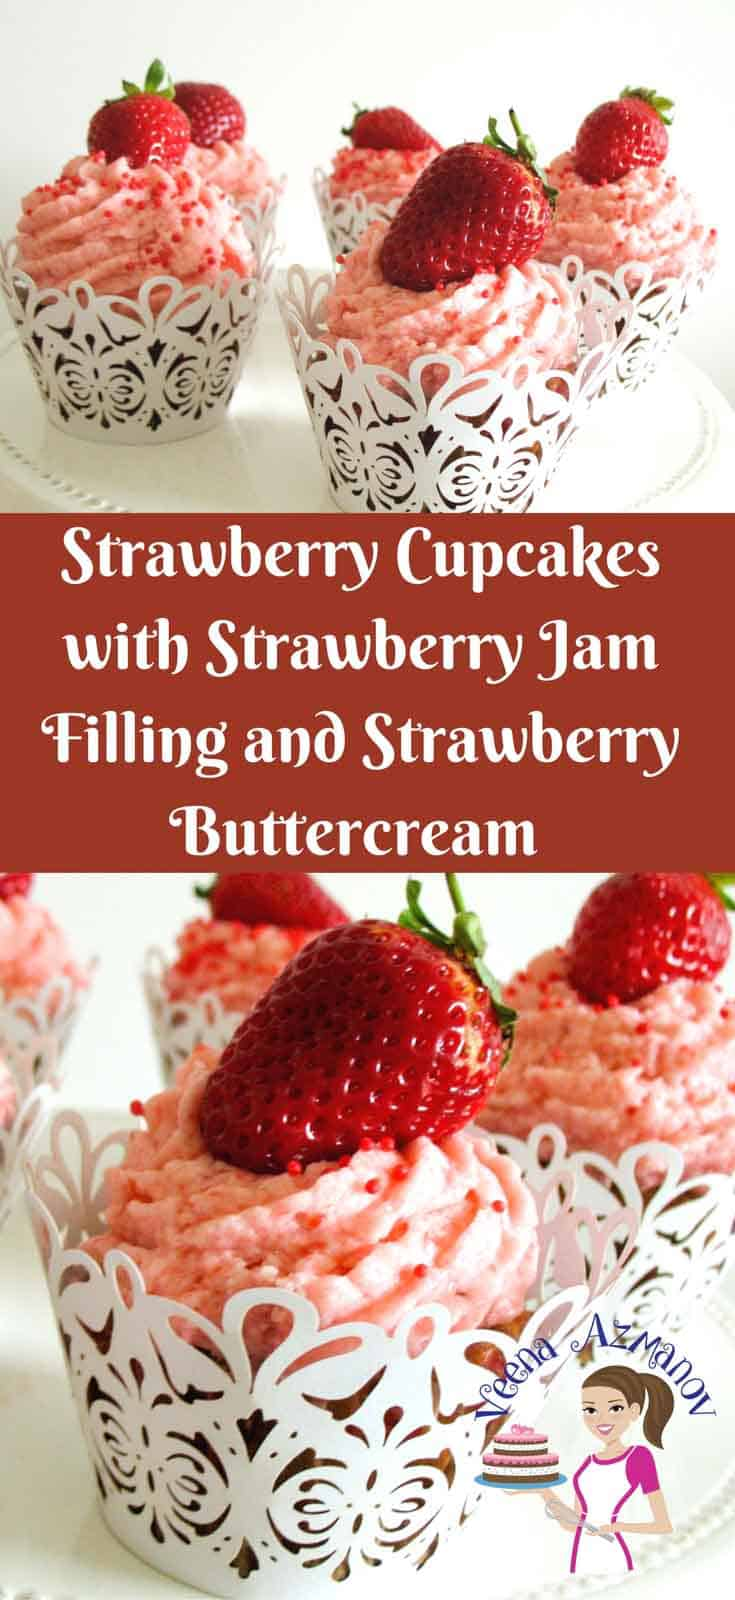 These delicious Strawberry Cupcakes are the ultimate strawberry pleasure with soft jam centers, frosted with luxurious strawberry buttercream and adorned with a fresh strawberry. These are simple, easy and my one bowl baking from scratch series you will love.